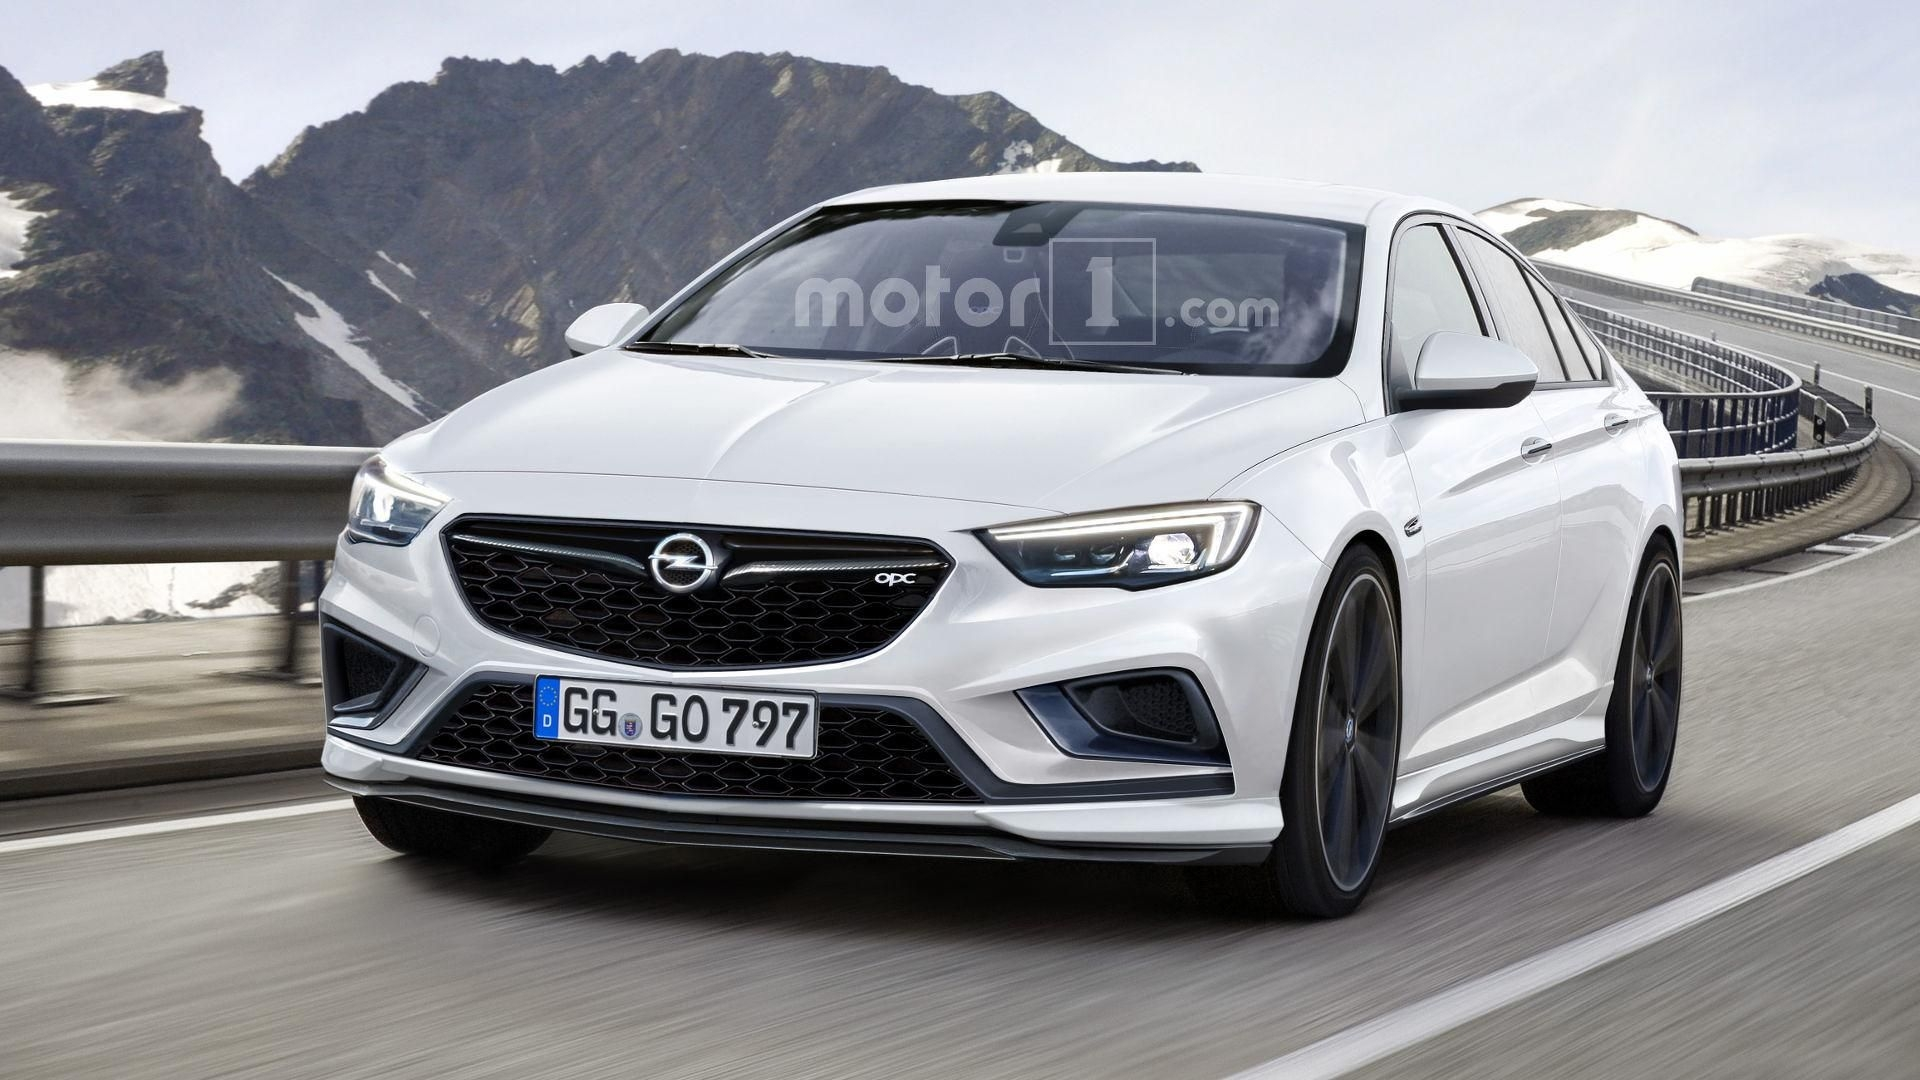 96 All New 2019 New Opel Insignia Photos